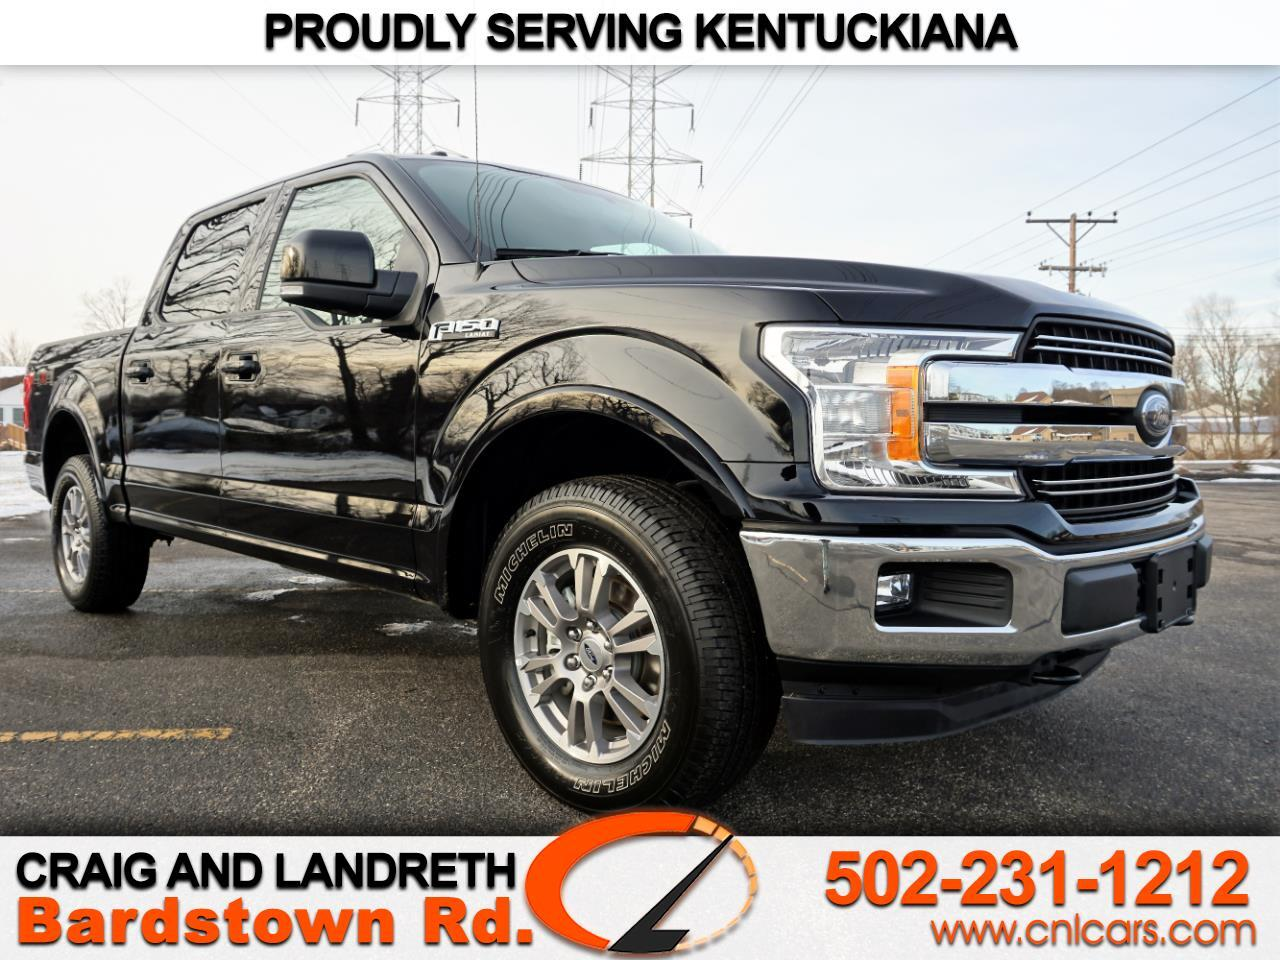 2018 Ford F-150 4WD Lariat